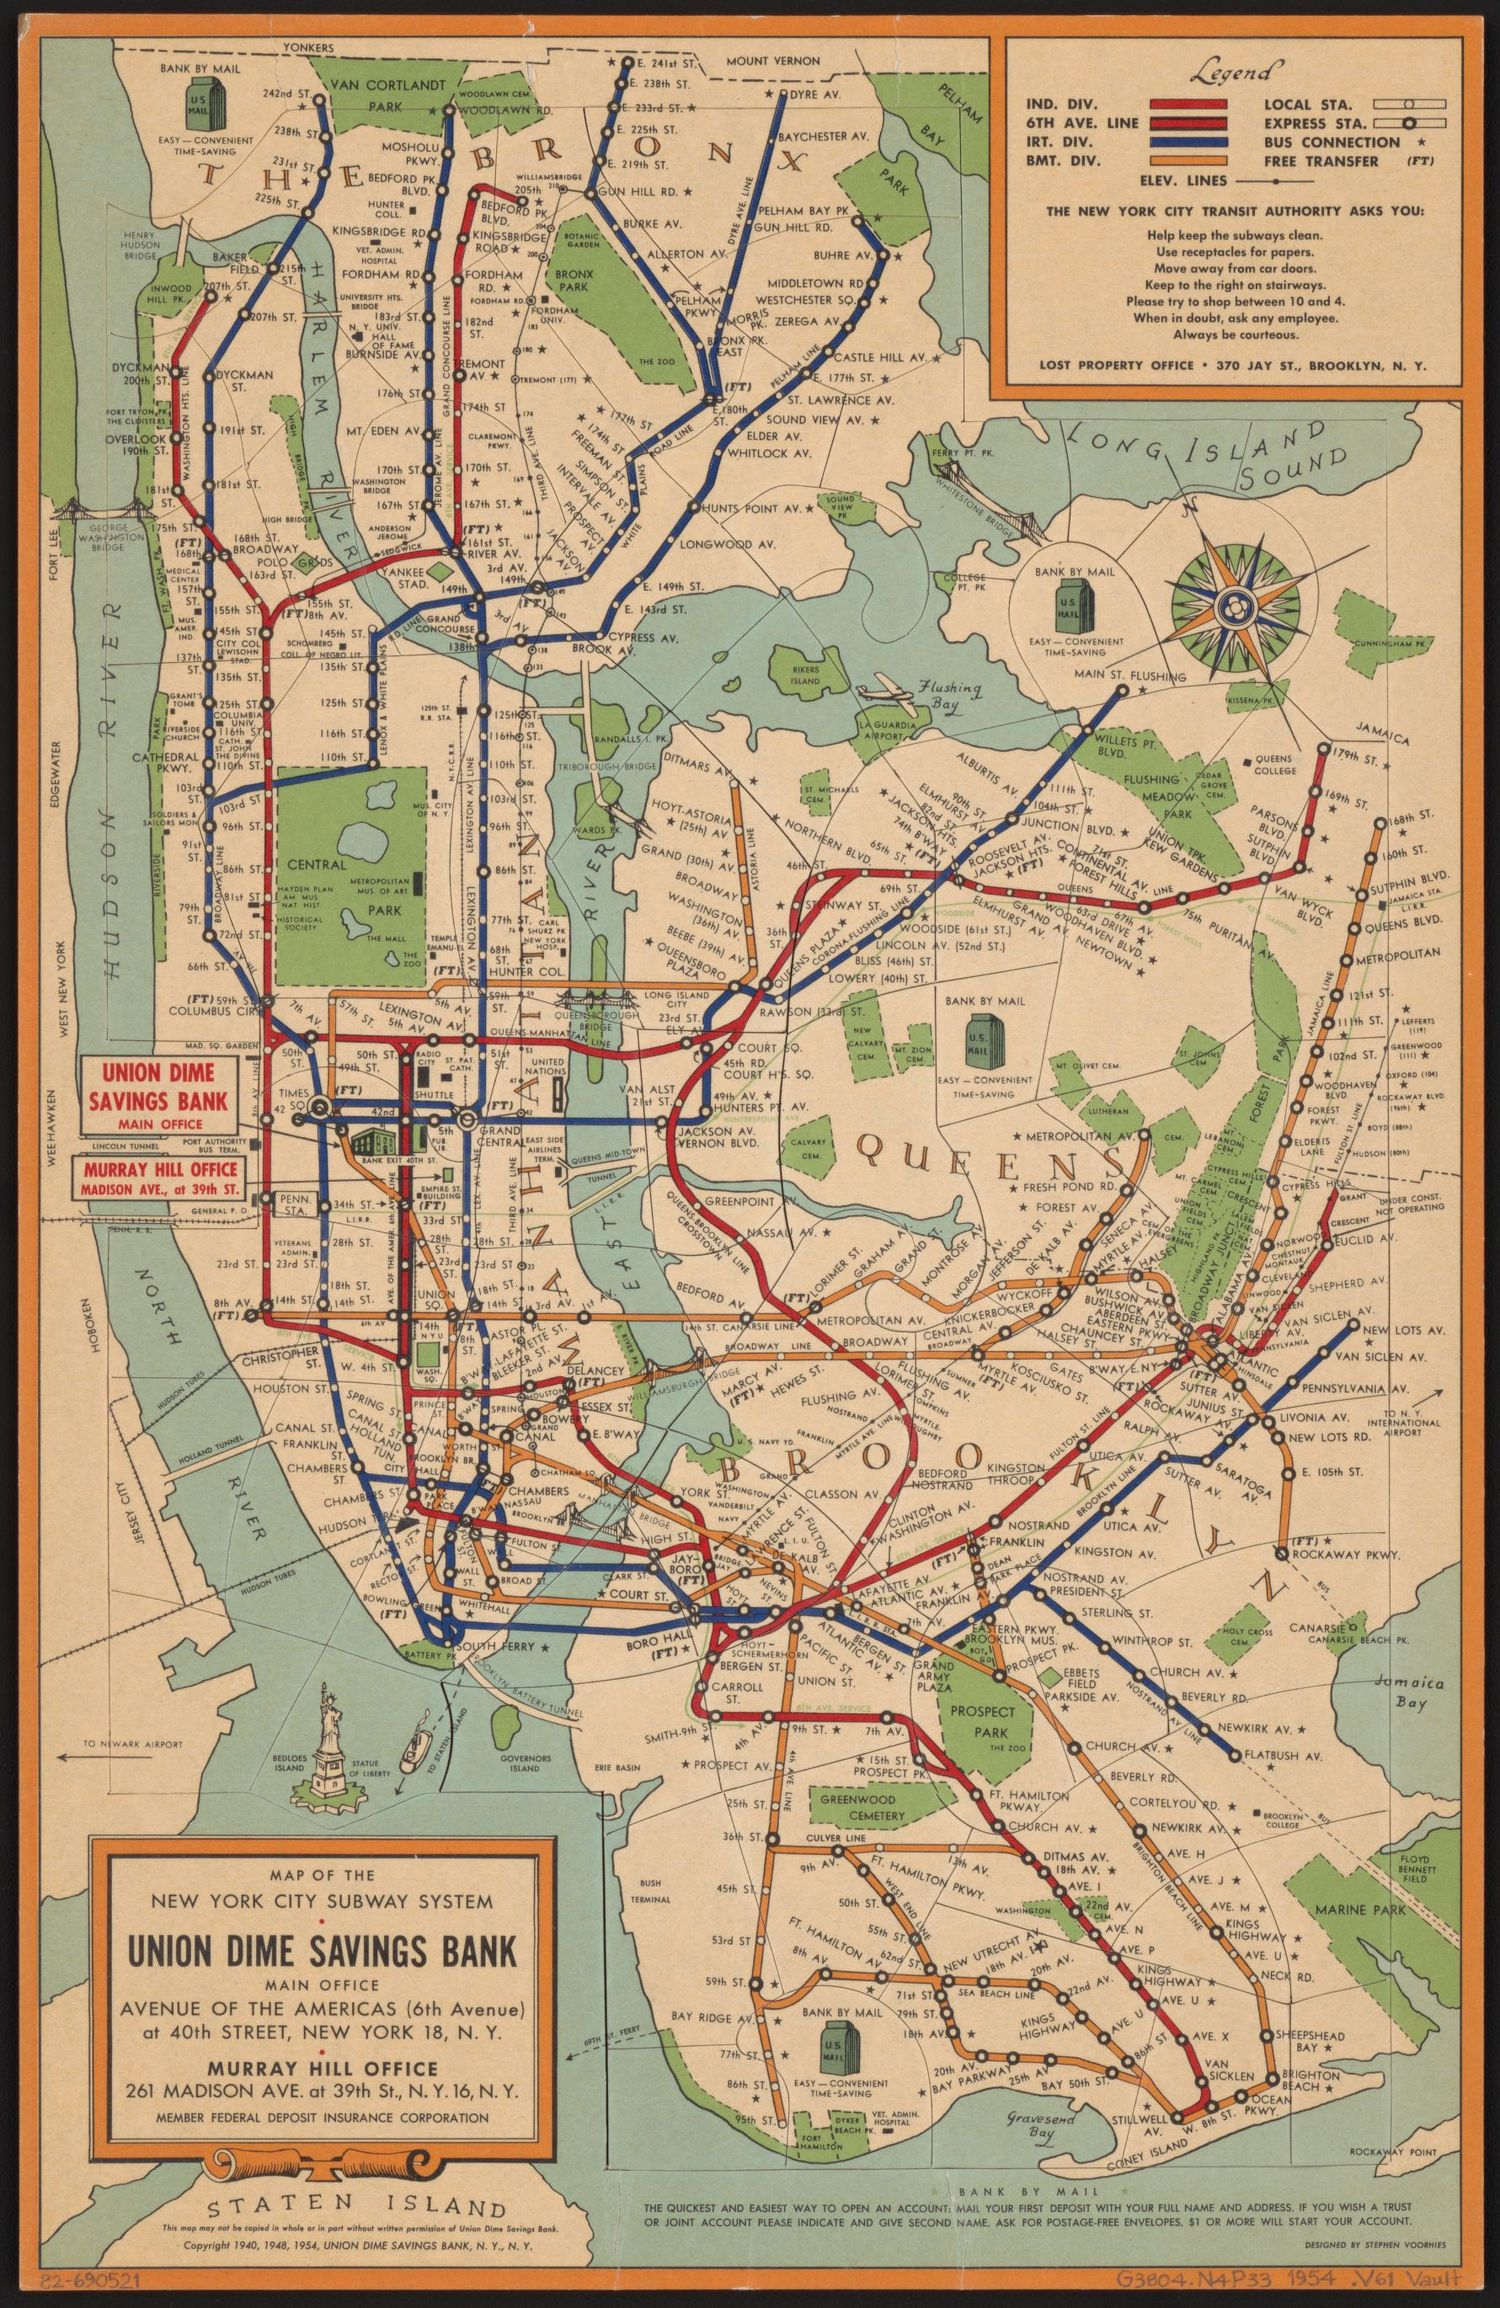 Latest Nyc Subway Map.Maps Vintage Map Shows New York City Subway System In 1954